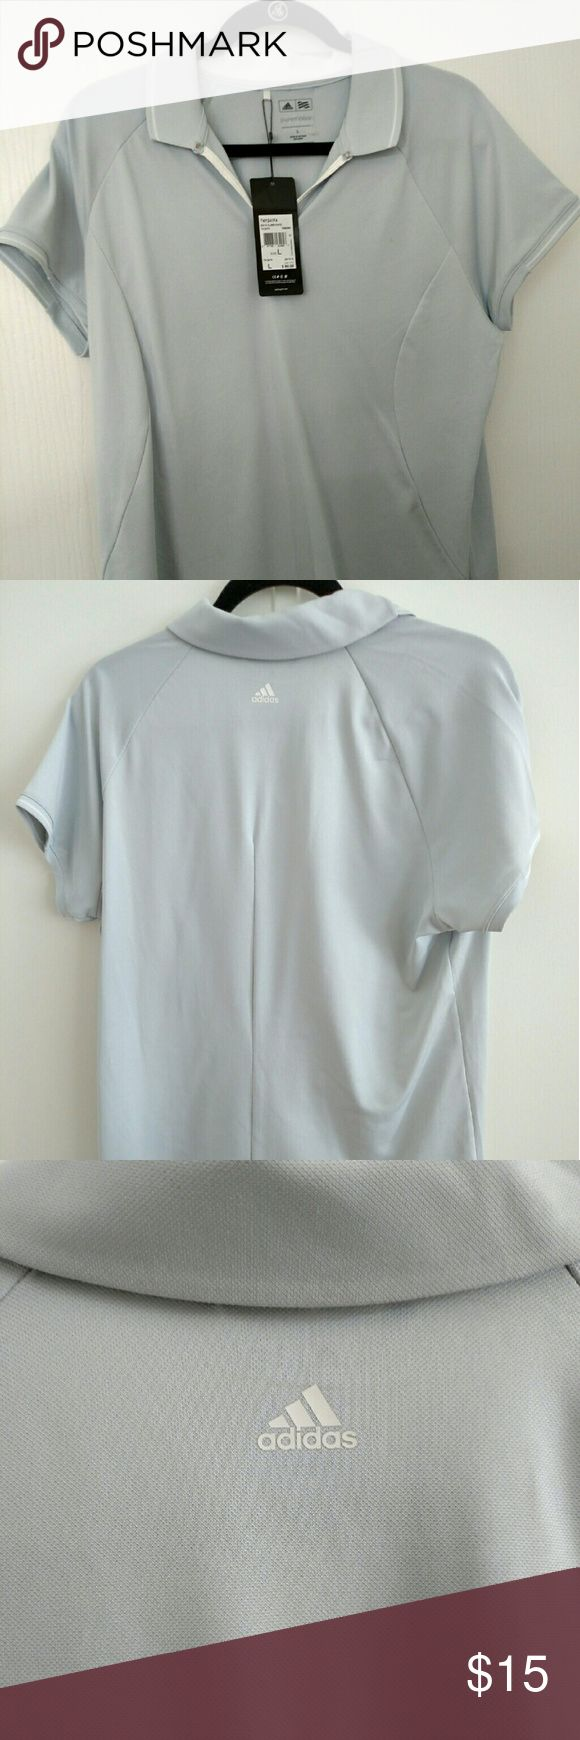 Adidas pure motion golf shirt sz Lg NWT Adidas?Womens Golf Shirt provides outstanding comfort and a great fit for all players. The Adidas puremotion fabric is lightweight & breathable keeping you dry all day long.  Adidas Womens  Puremotion stretch fabric is lightweight Breathable design Contrast piping at collar Anti-roll collar adidas logo on back neck yoke 100% polyester jersey Machine wash only Adidas Tops